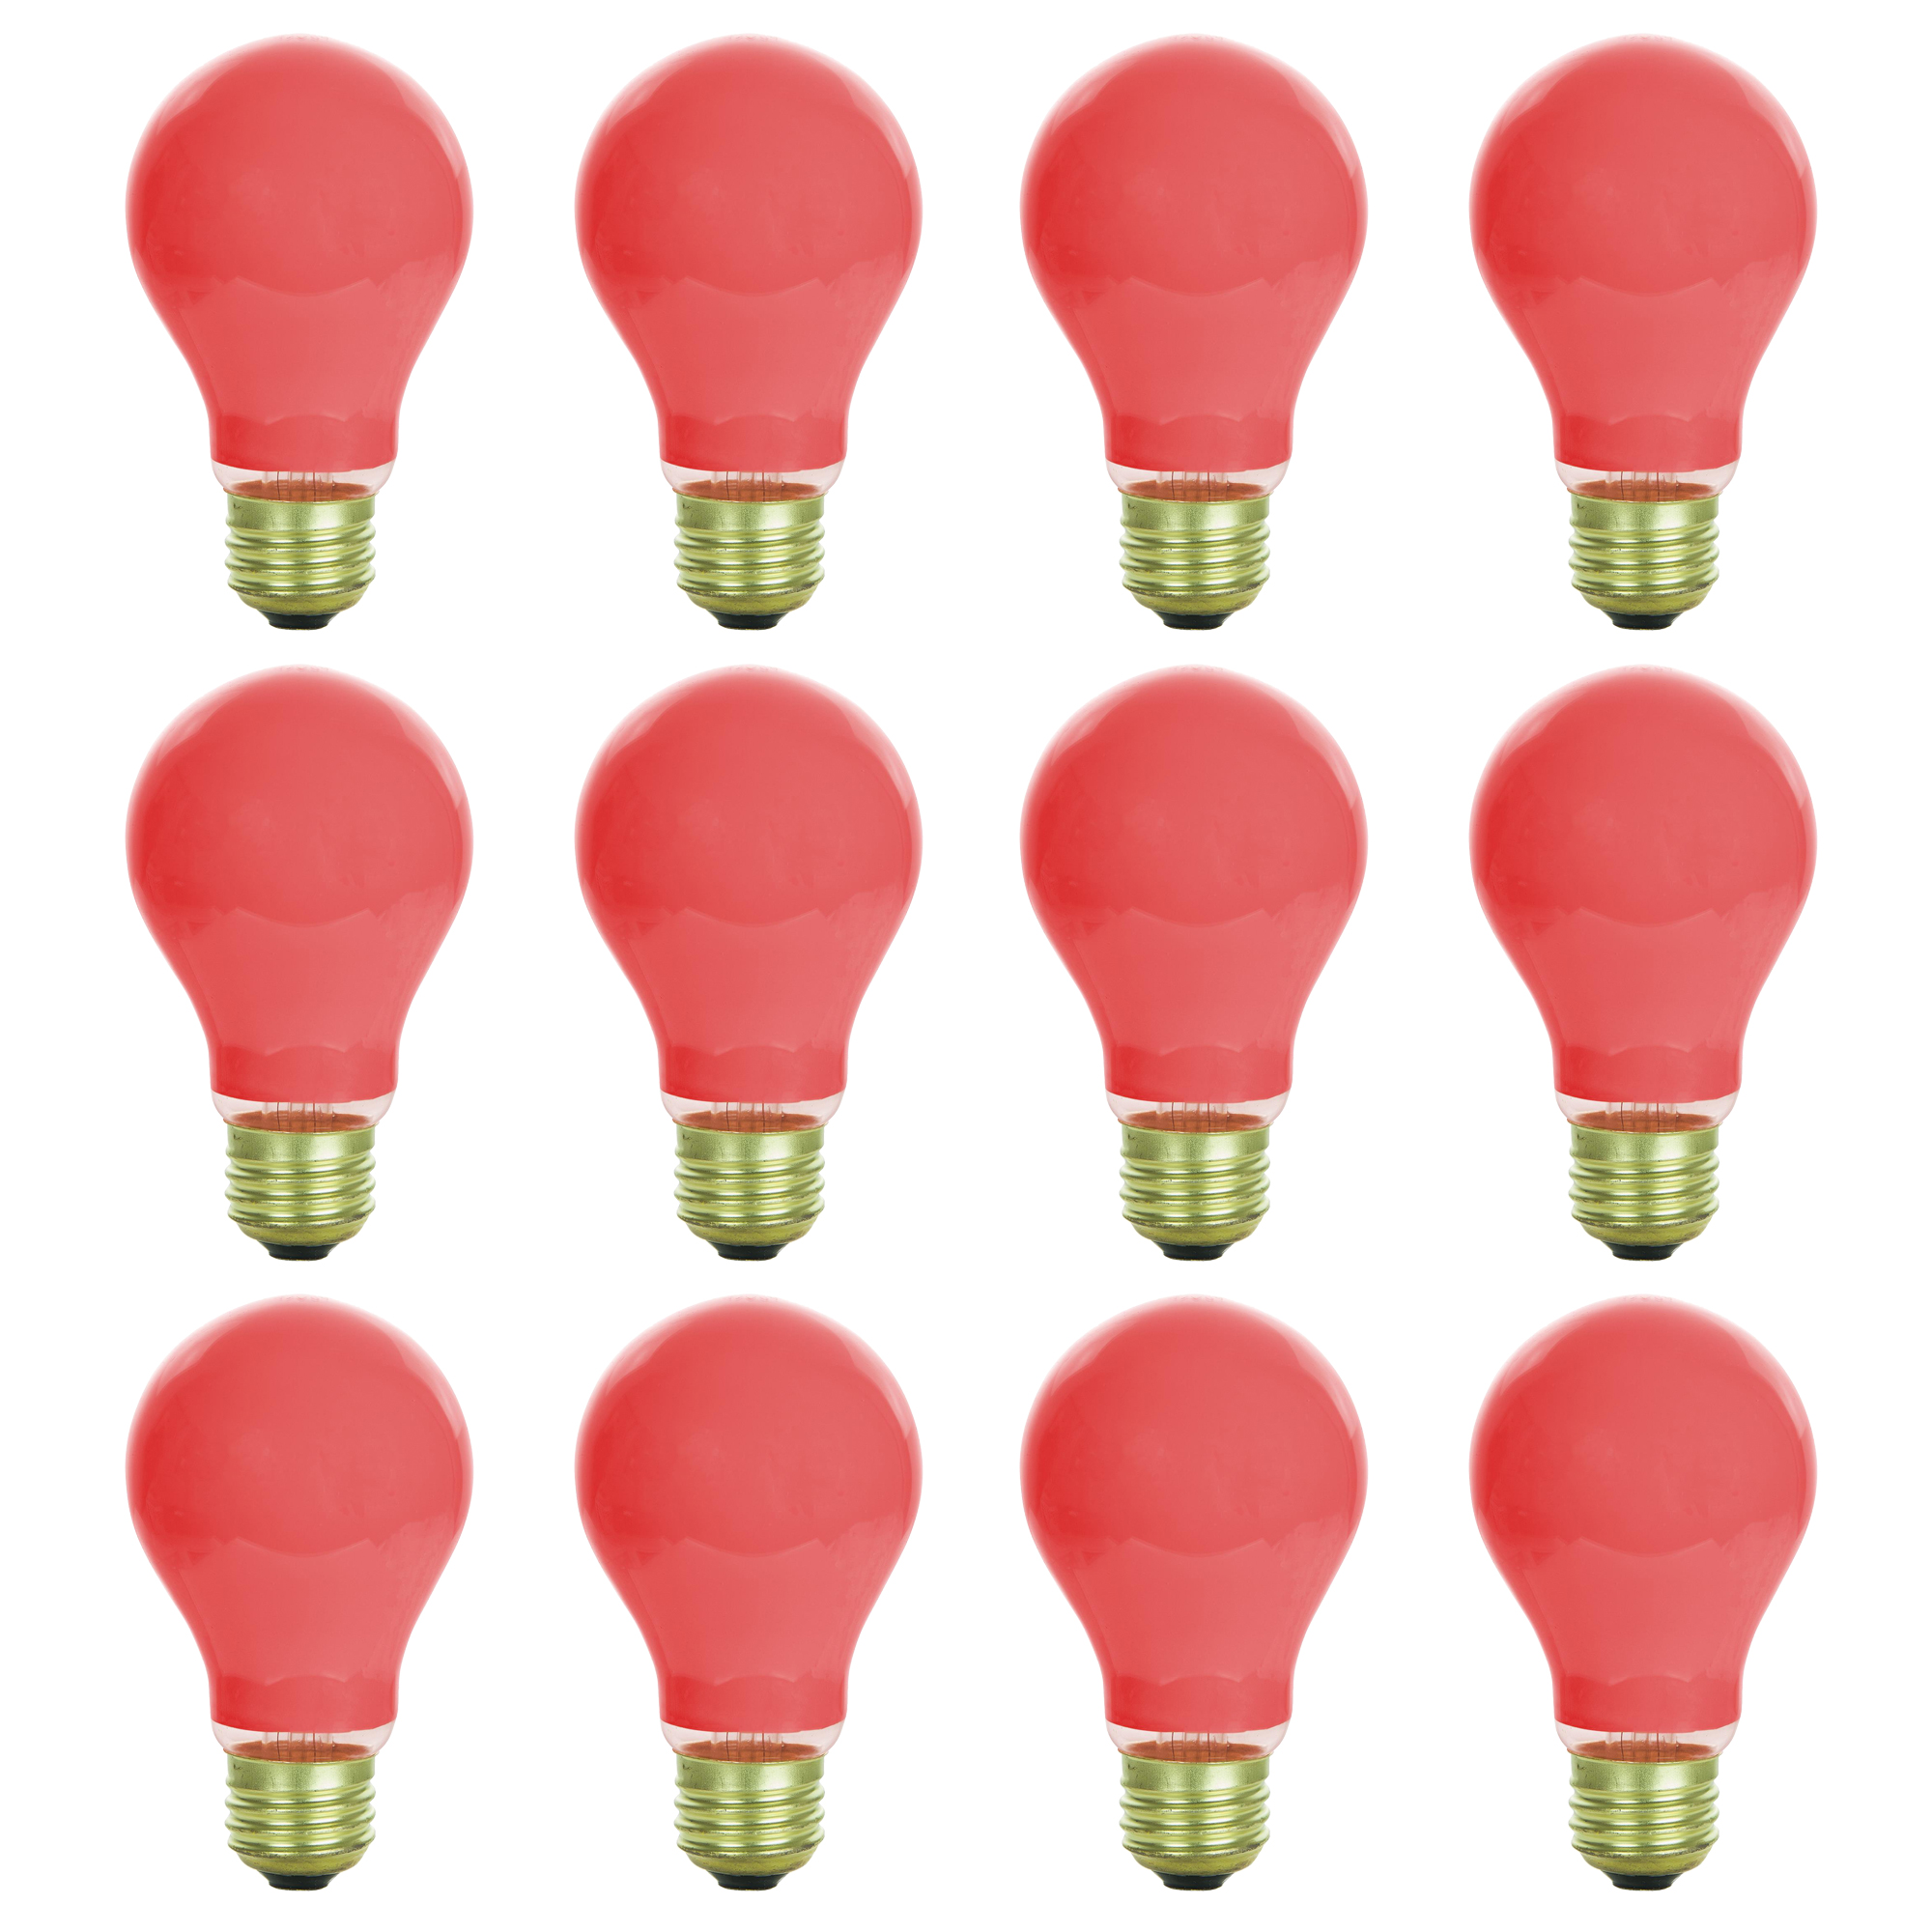 12 Pack of Sunlite 60 watt Ceramic Red Colored Incandescent Light Bulb - Parties, Decorative, and Holiday 1,250 Average Life Hours